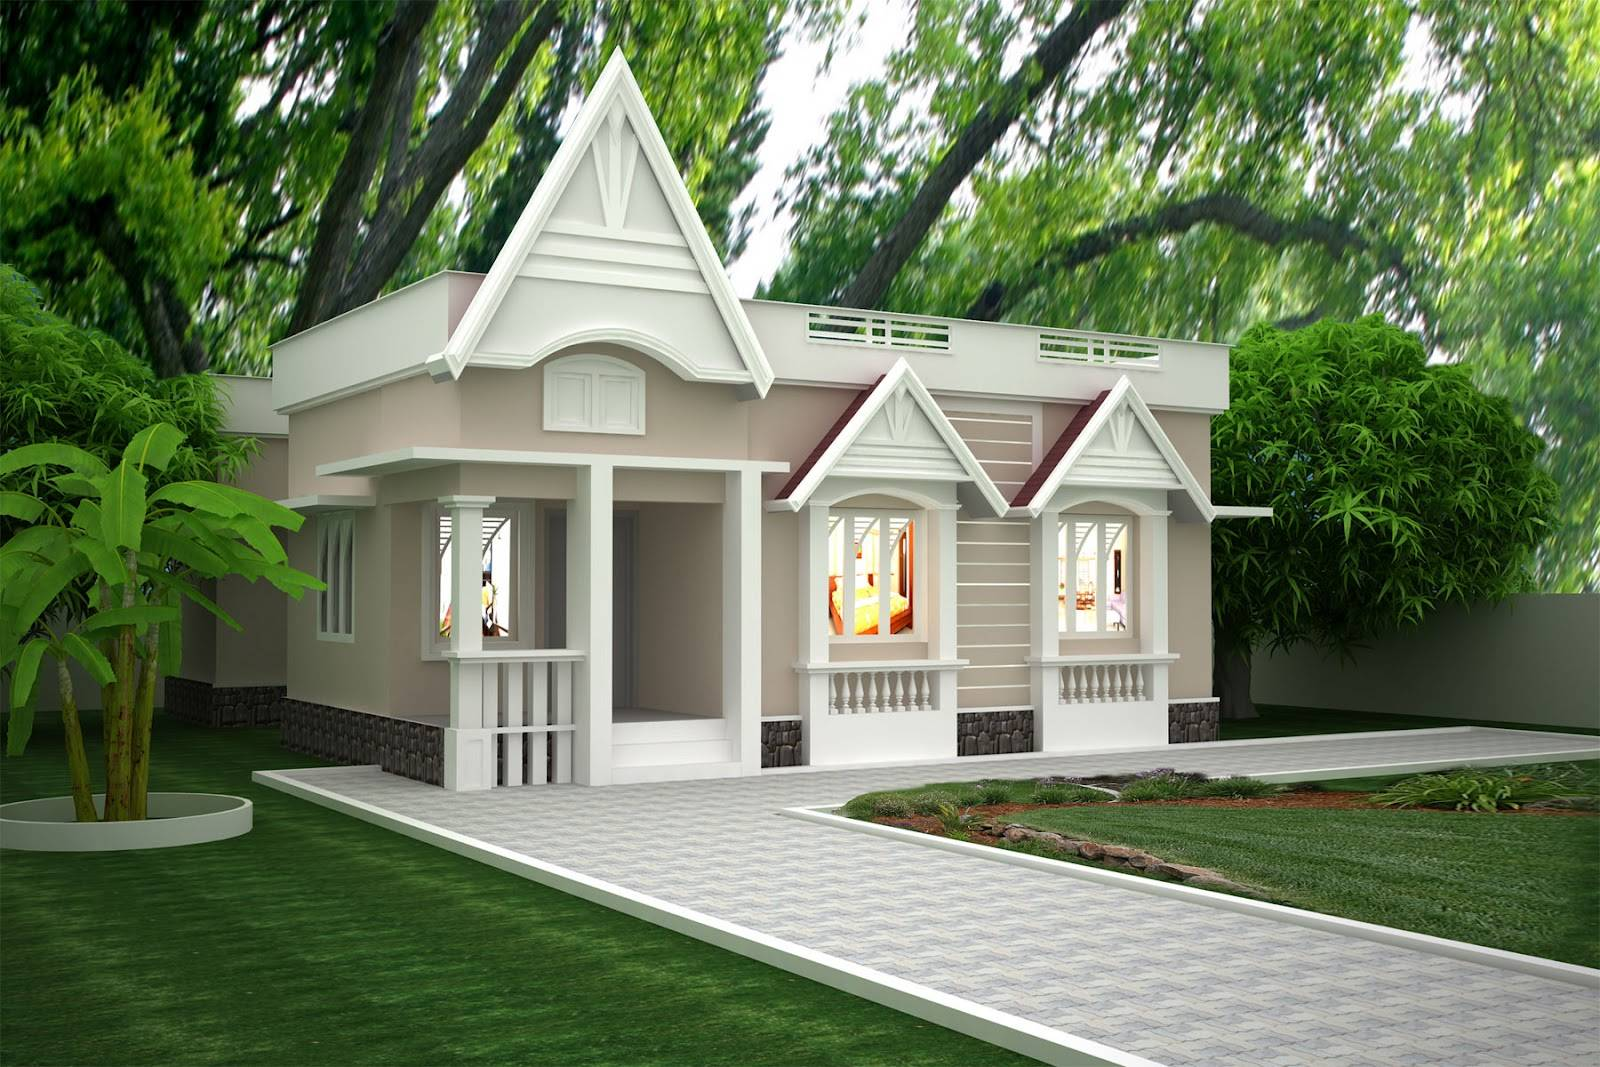 Single Story Building Exterior Design Home 409919 Single Story Building Exterior Design Home House Plans 10690 On